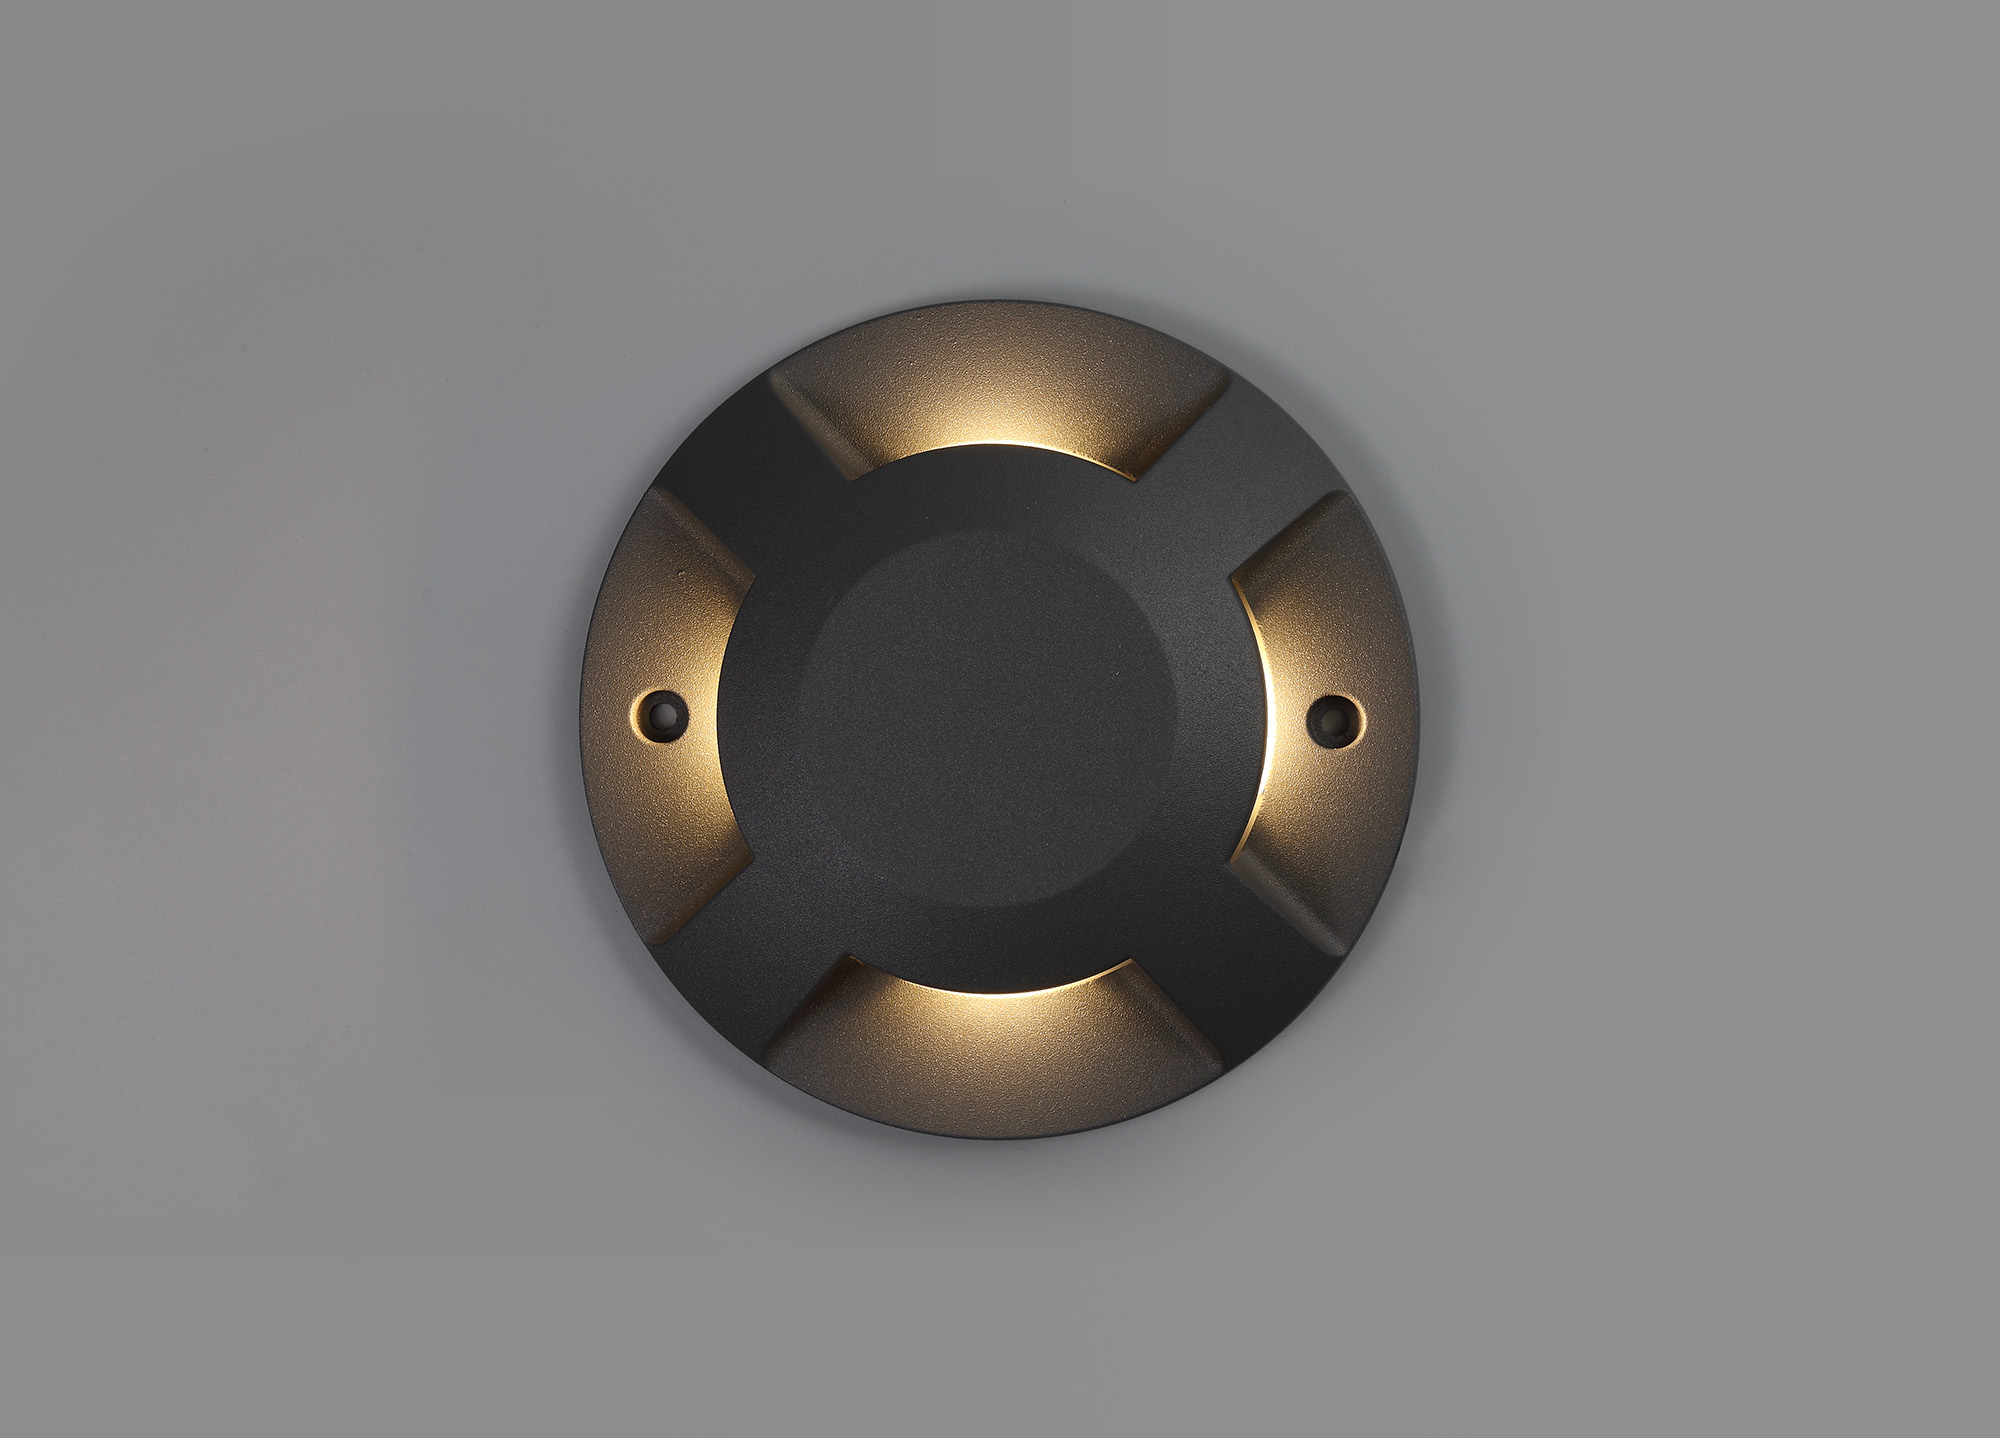 Above Ground (NO DIGGING REQUIRED) Driveover 4 Light, 4 x 3W LED, 3000K, 256lm, IP67, IK10, Anthracite, 3yrs Warranty